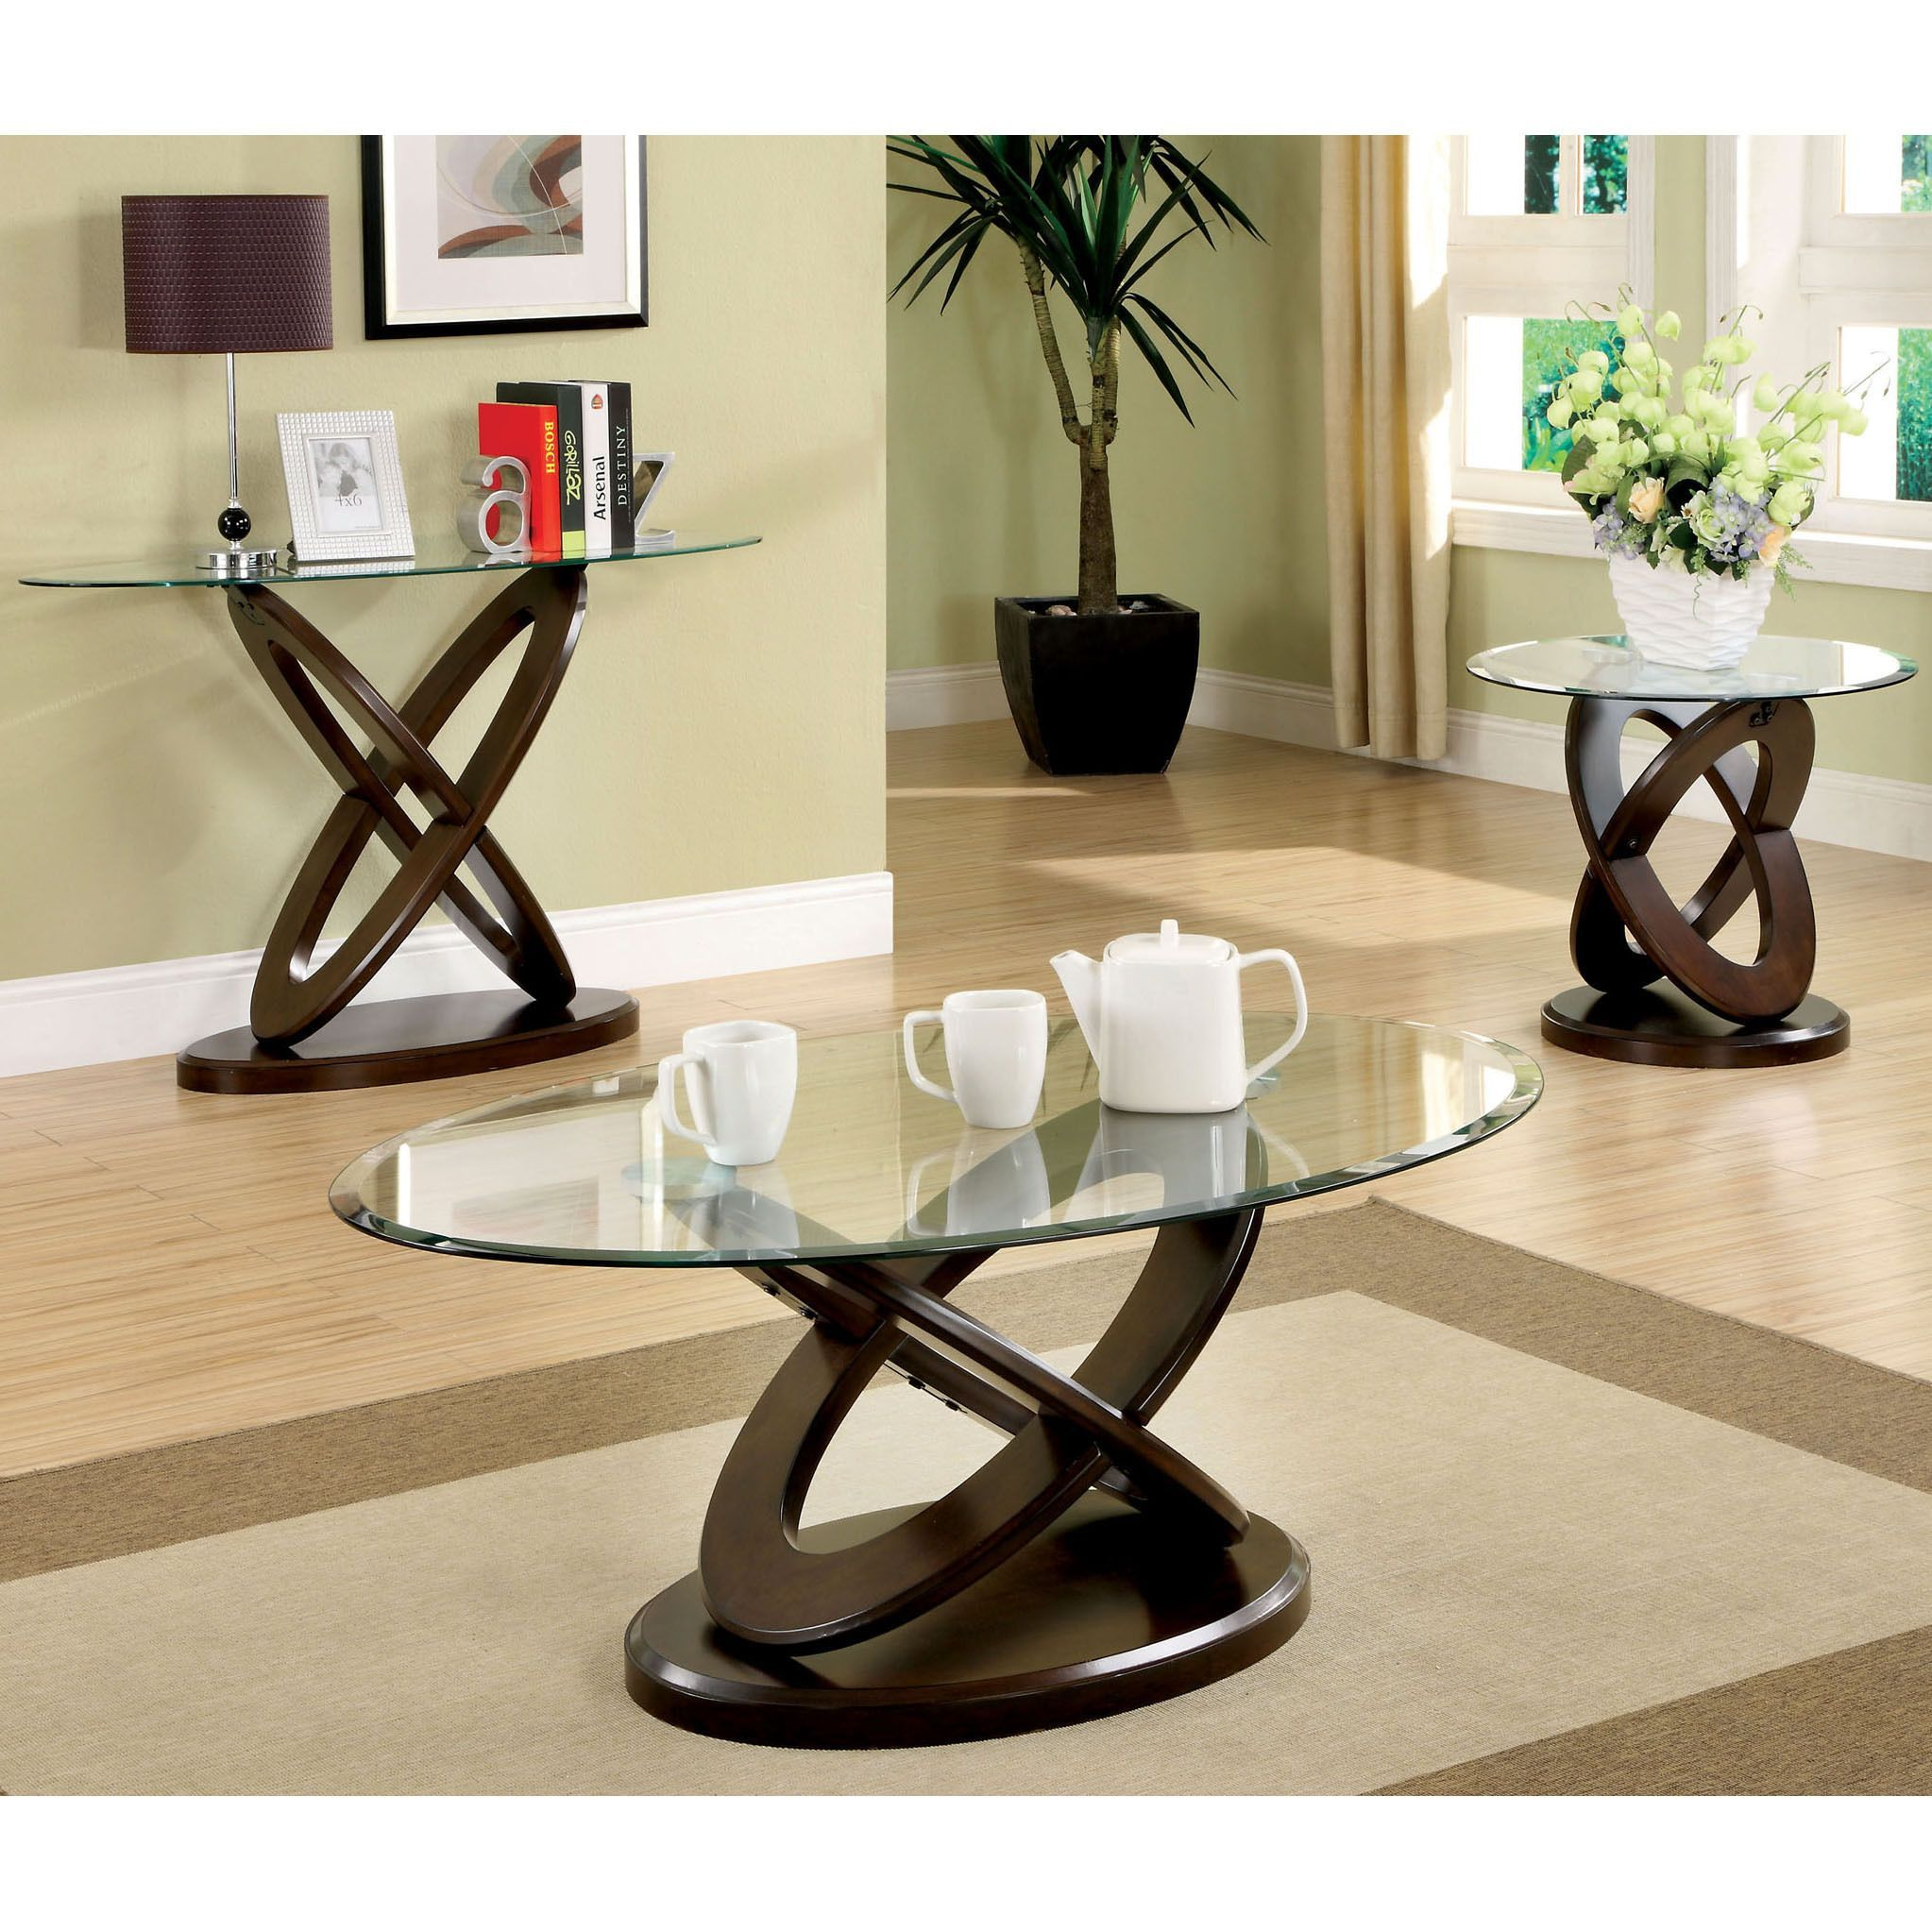 Overstock Com Online Shopping Bedding Furniture Electronics Jewelry Clothing More In 2020 Modern Glass Coffee Table Oval Glass Coffee Table Coffee Table [ 2046 x 2046 Pixel ]